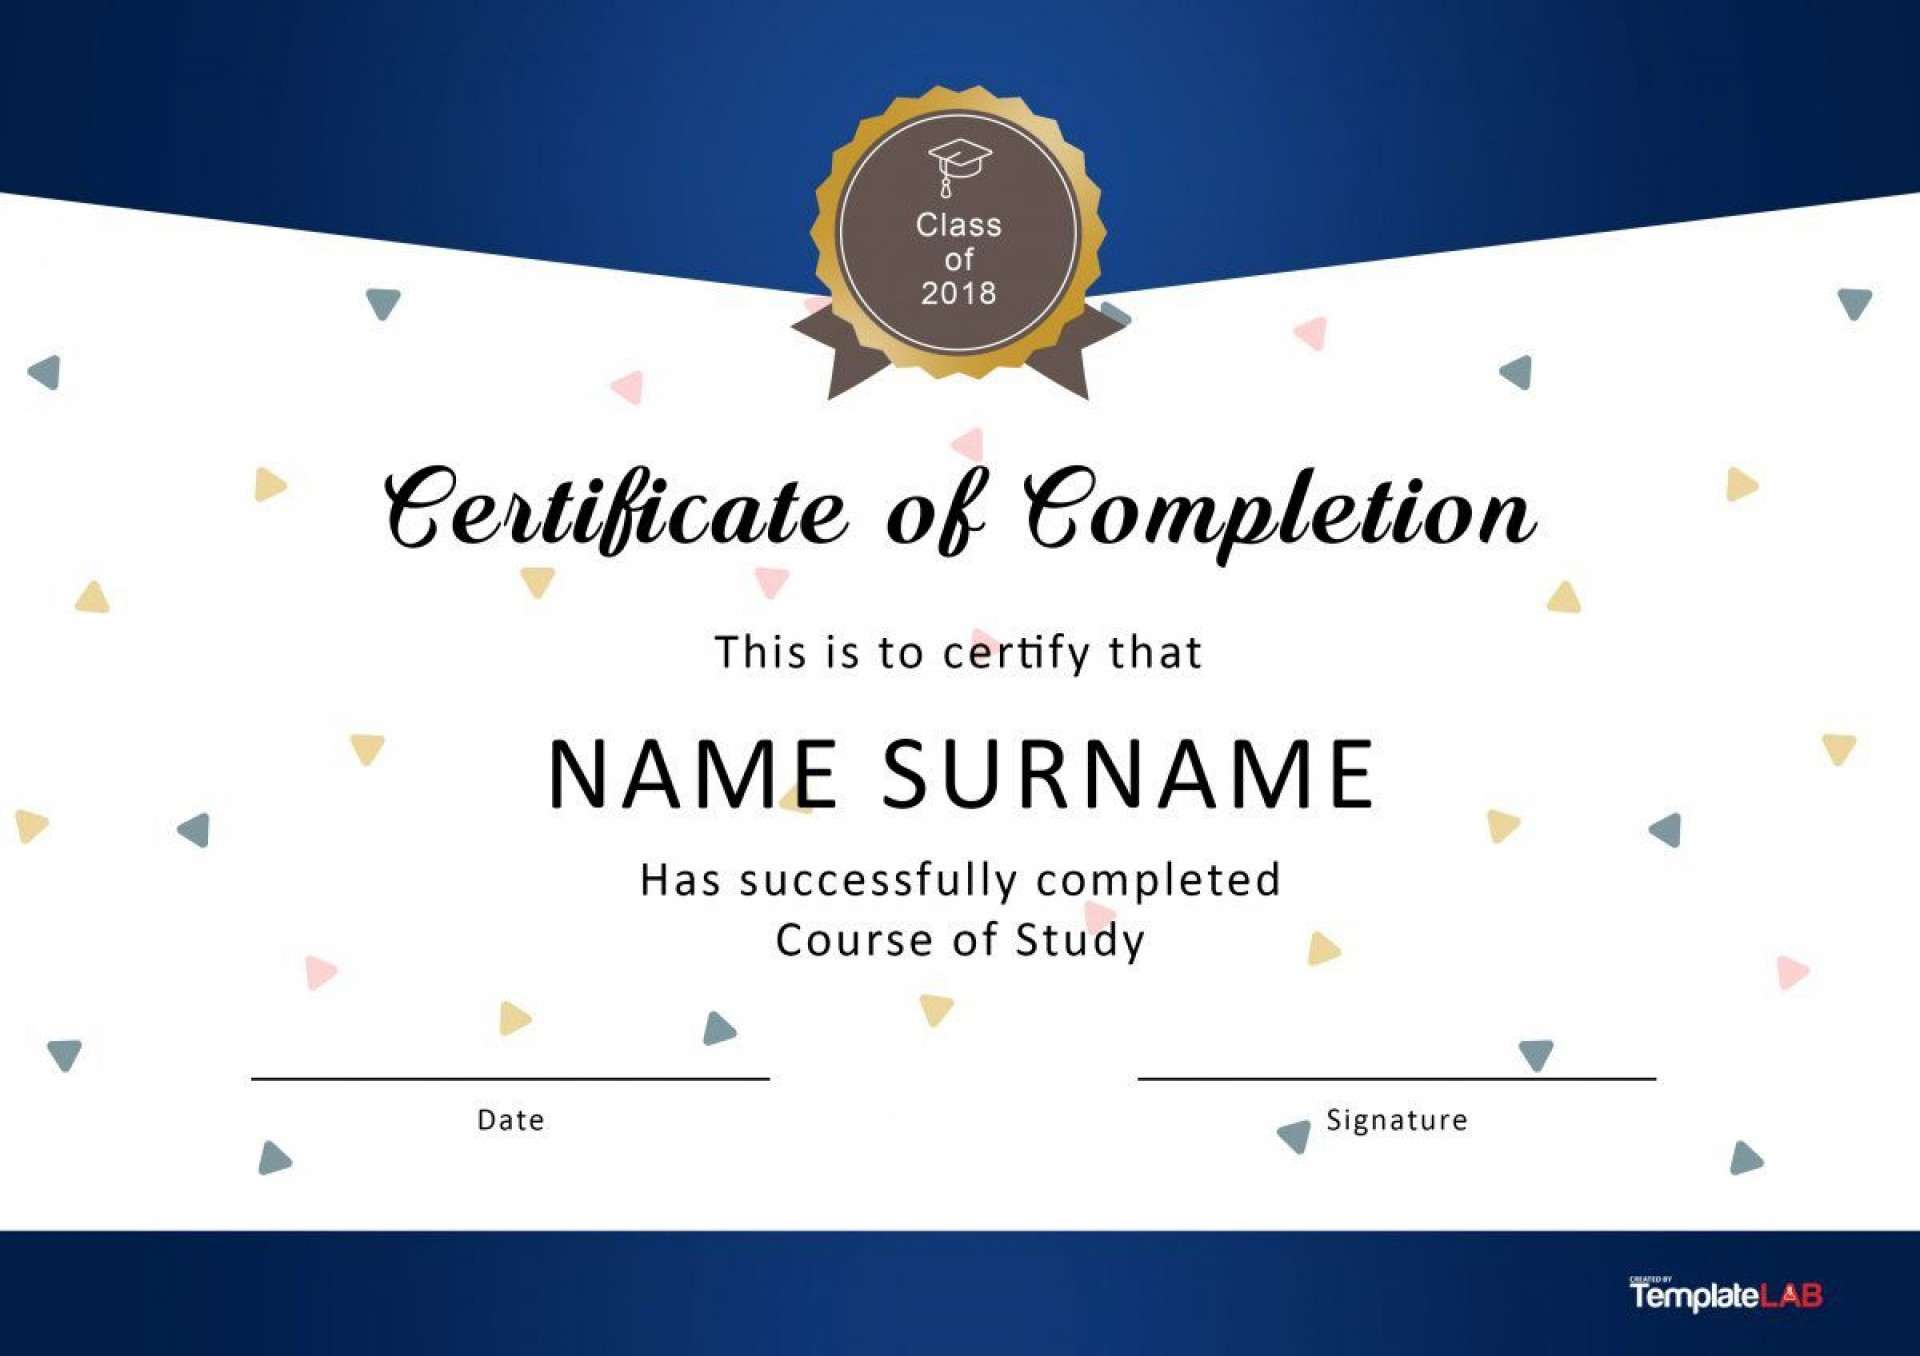 005 Shocking Free Certificate Template Microsoft Word Concept  Of Authenticity Art Puppy Birth Marriage1920